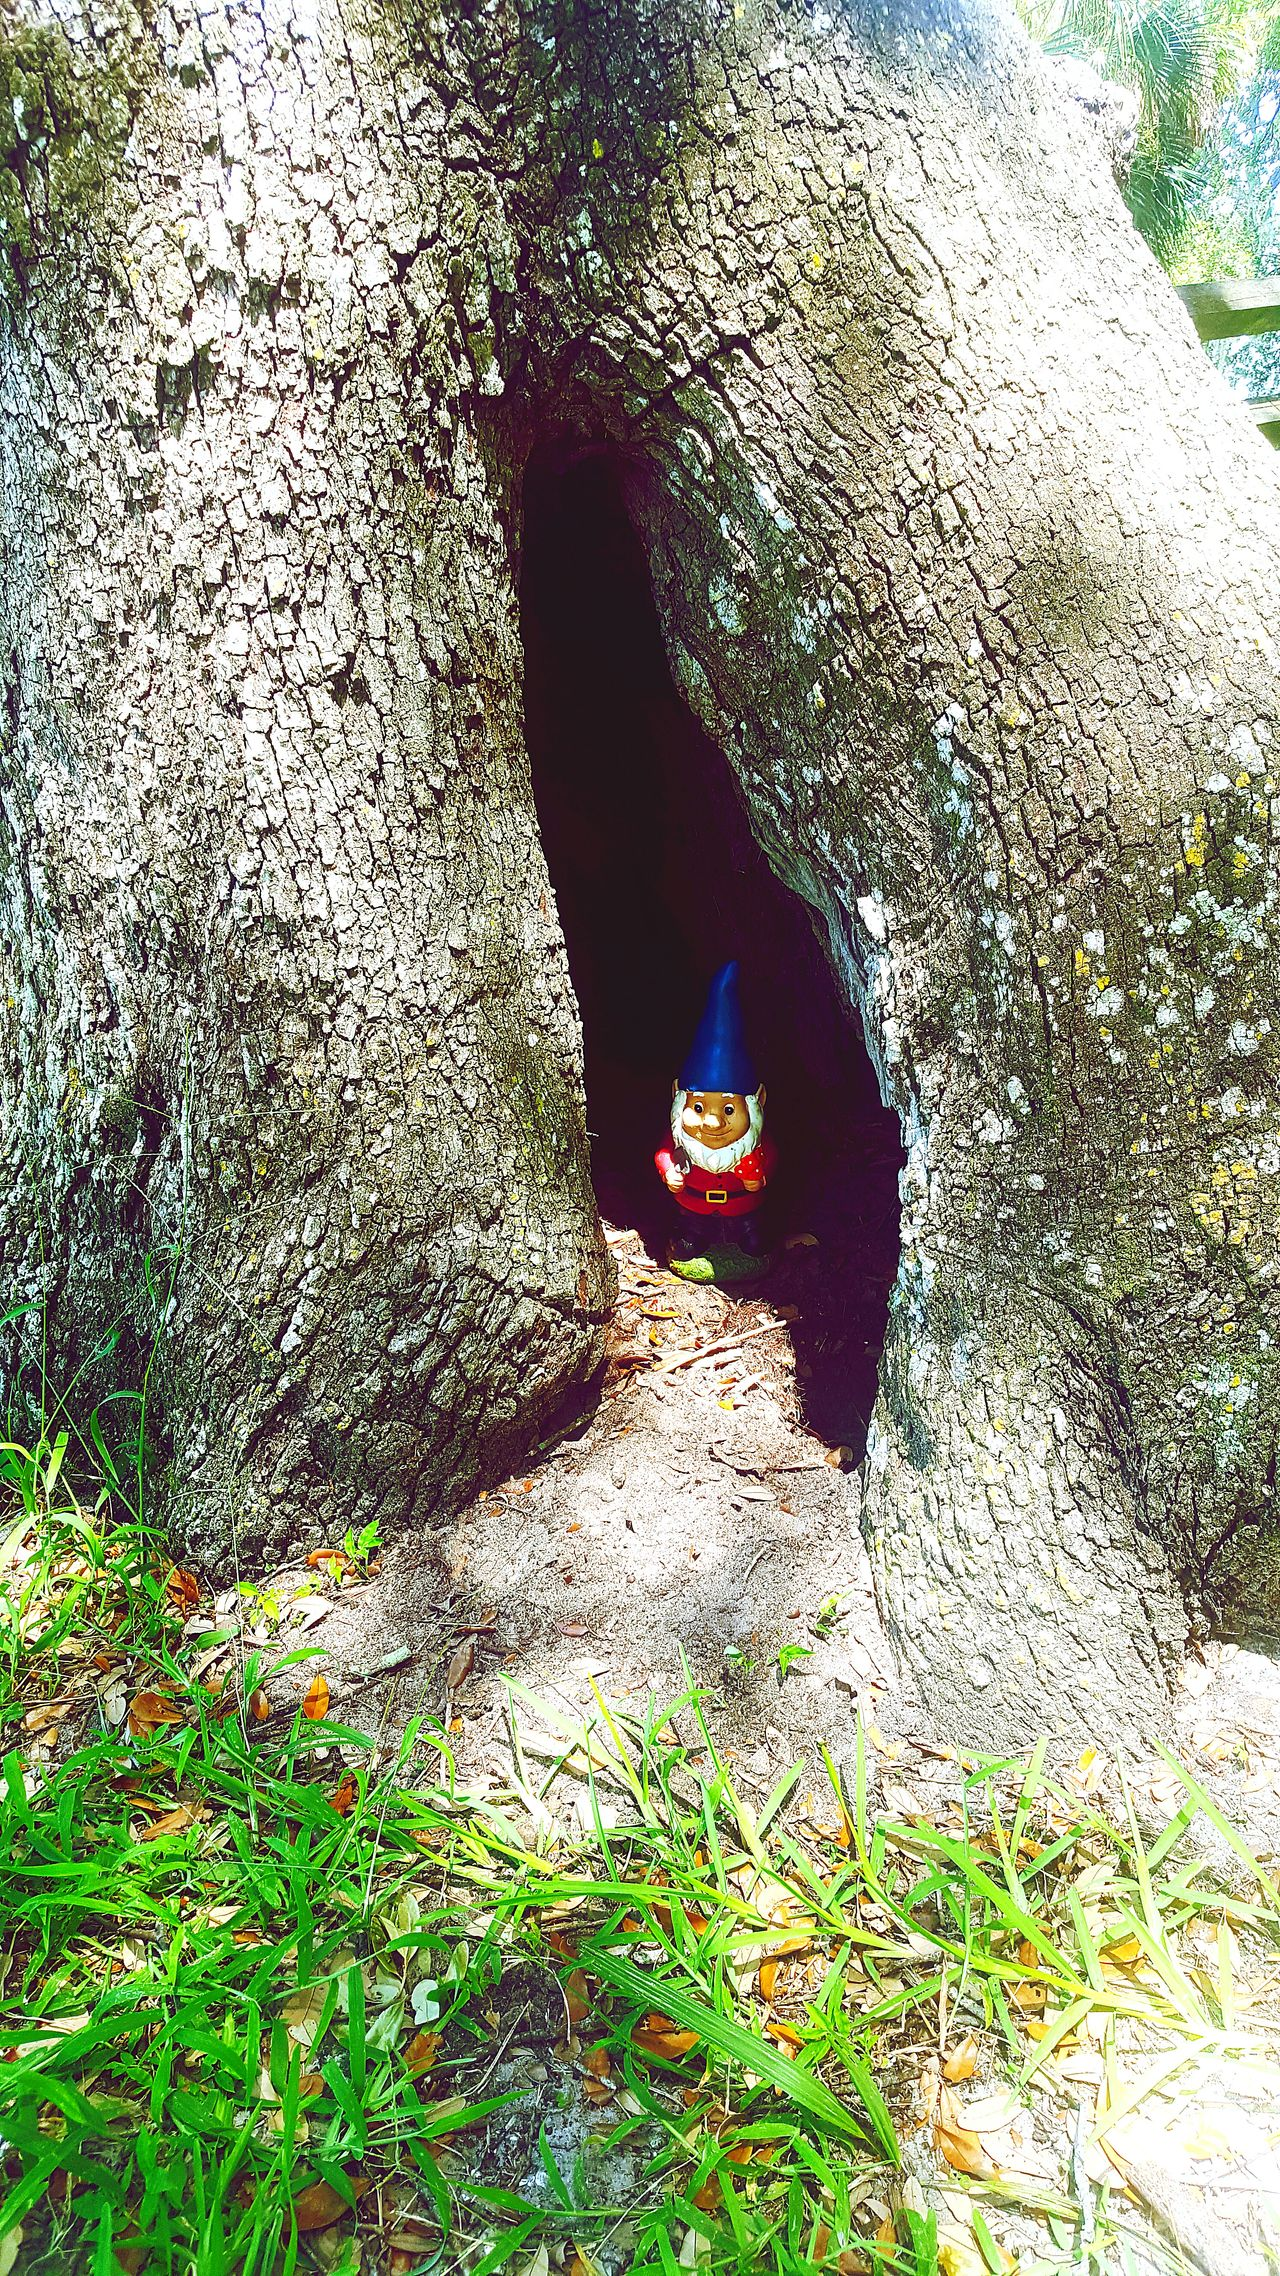 Somebody put a random gnome in a tree in Philippe Park Philippe Park Outdoors Outdoor Photography Gnome Tree Tree Trunk Hidden Trees Tree_collection  Treescollection Gnome In Tree Funny Random Gnomes Of EyeEm Gnome Home Gnomes Home Gnomesiveknown Tree Trunk Splits Tree Trunks Tree Trunk Close Up Tree Trunk. Treelovers Nature Nature_collection Nature Photography